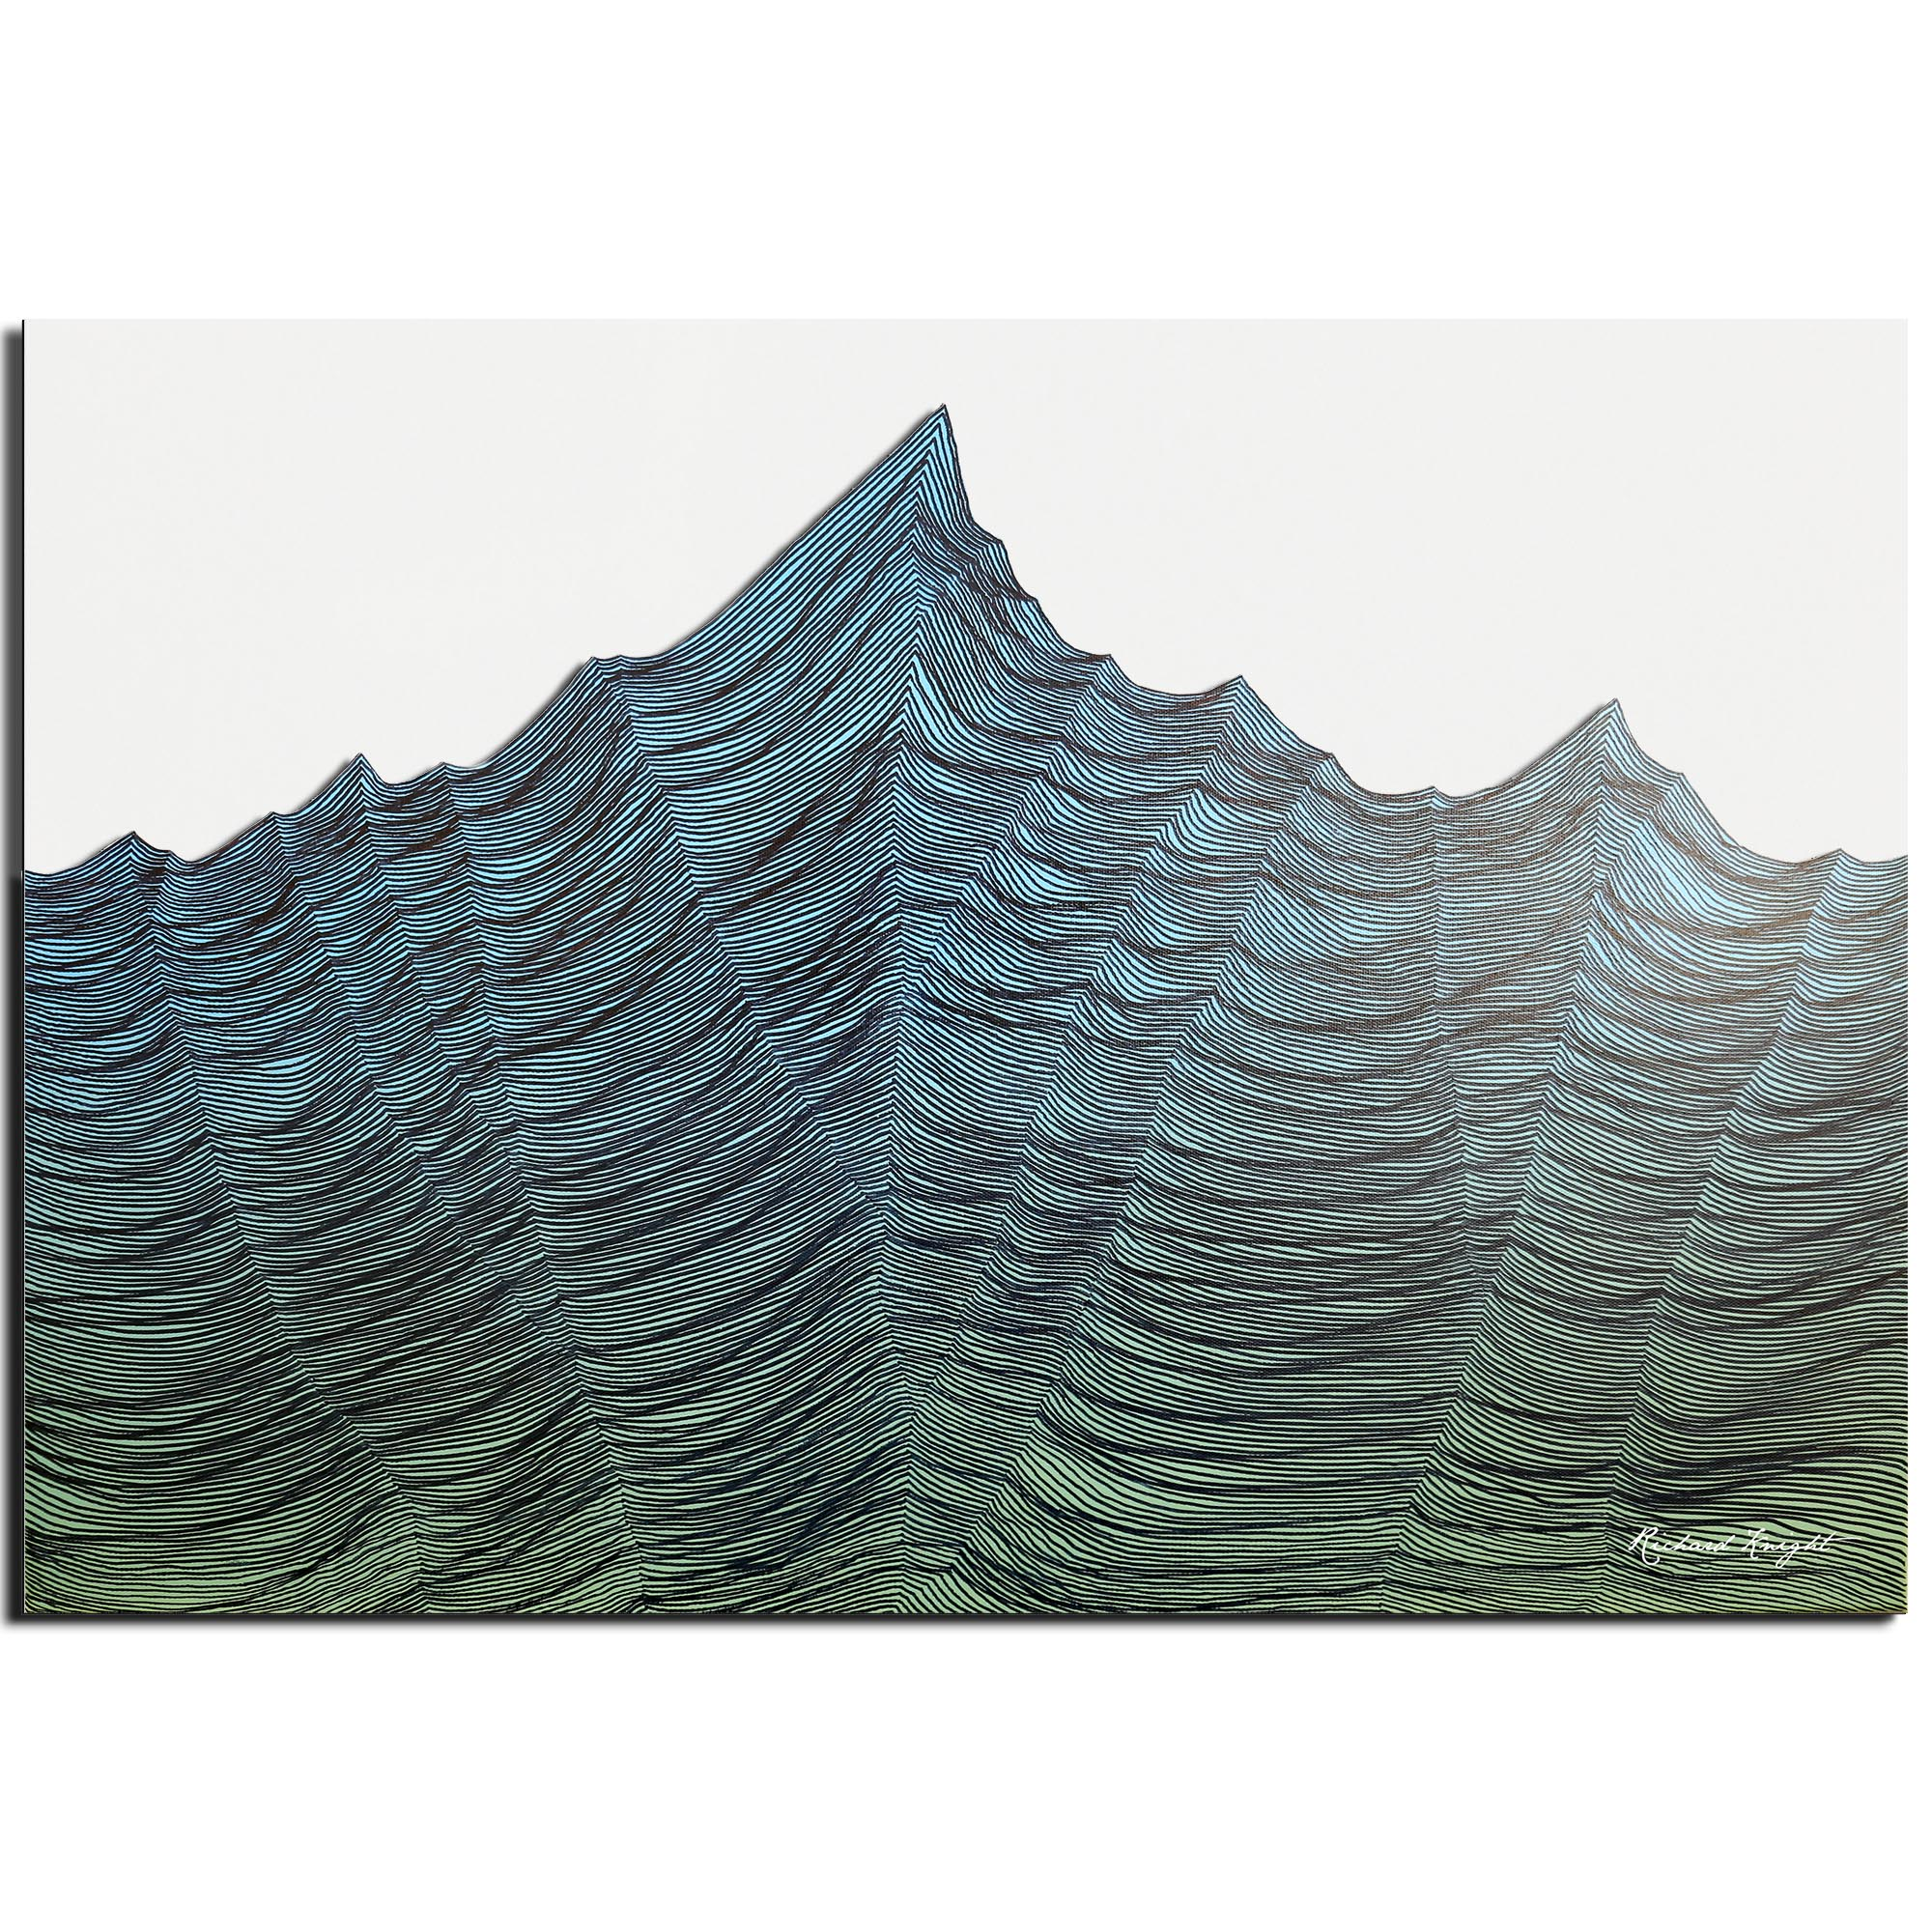 Richard Knight 'Lush Range' 32in x 22in Abstract Landscape Art on Polymetal